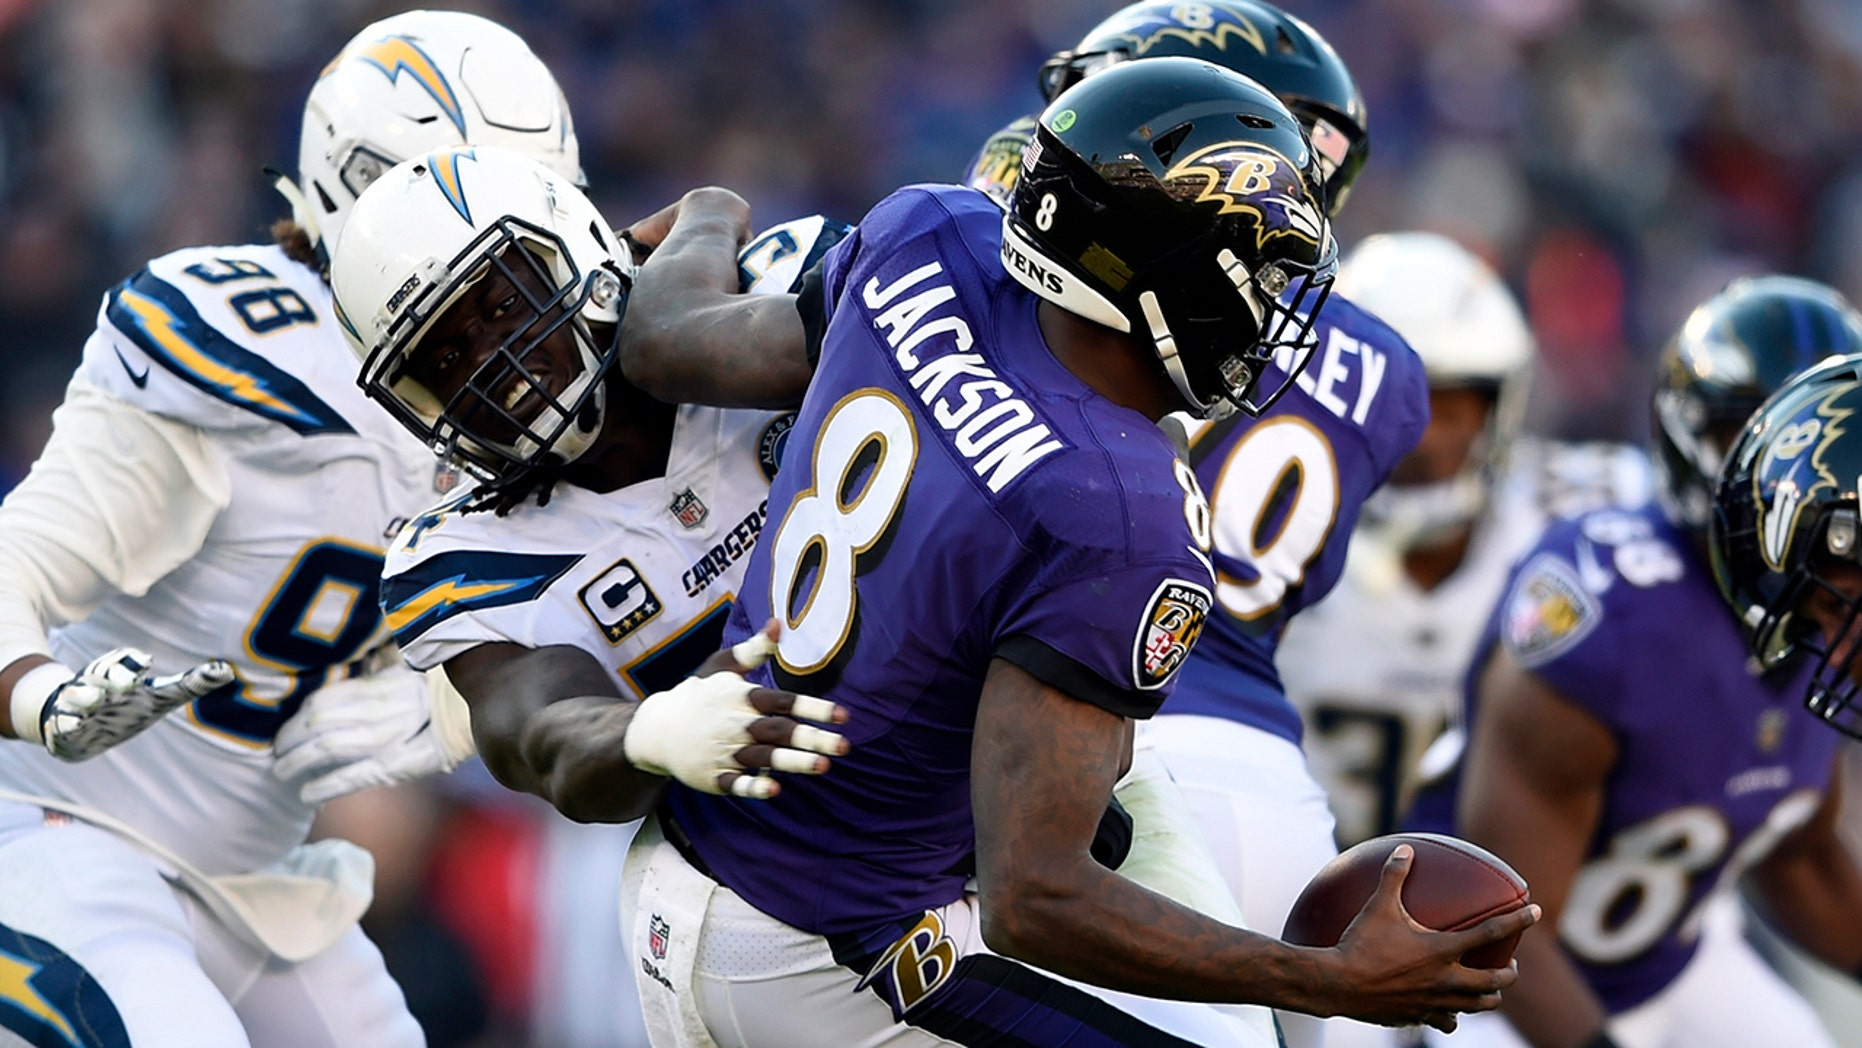 Baltimore Ravens quarterback Lamar Jackson (8) is sacked by Los Angeles Chargers defensive end Melvin Ingram in the second half of an NFL wild card playoff football game, Sunday, Jan. 6, 2019, in Baltimore.